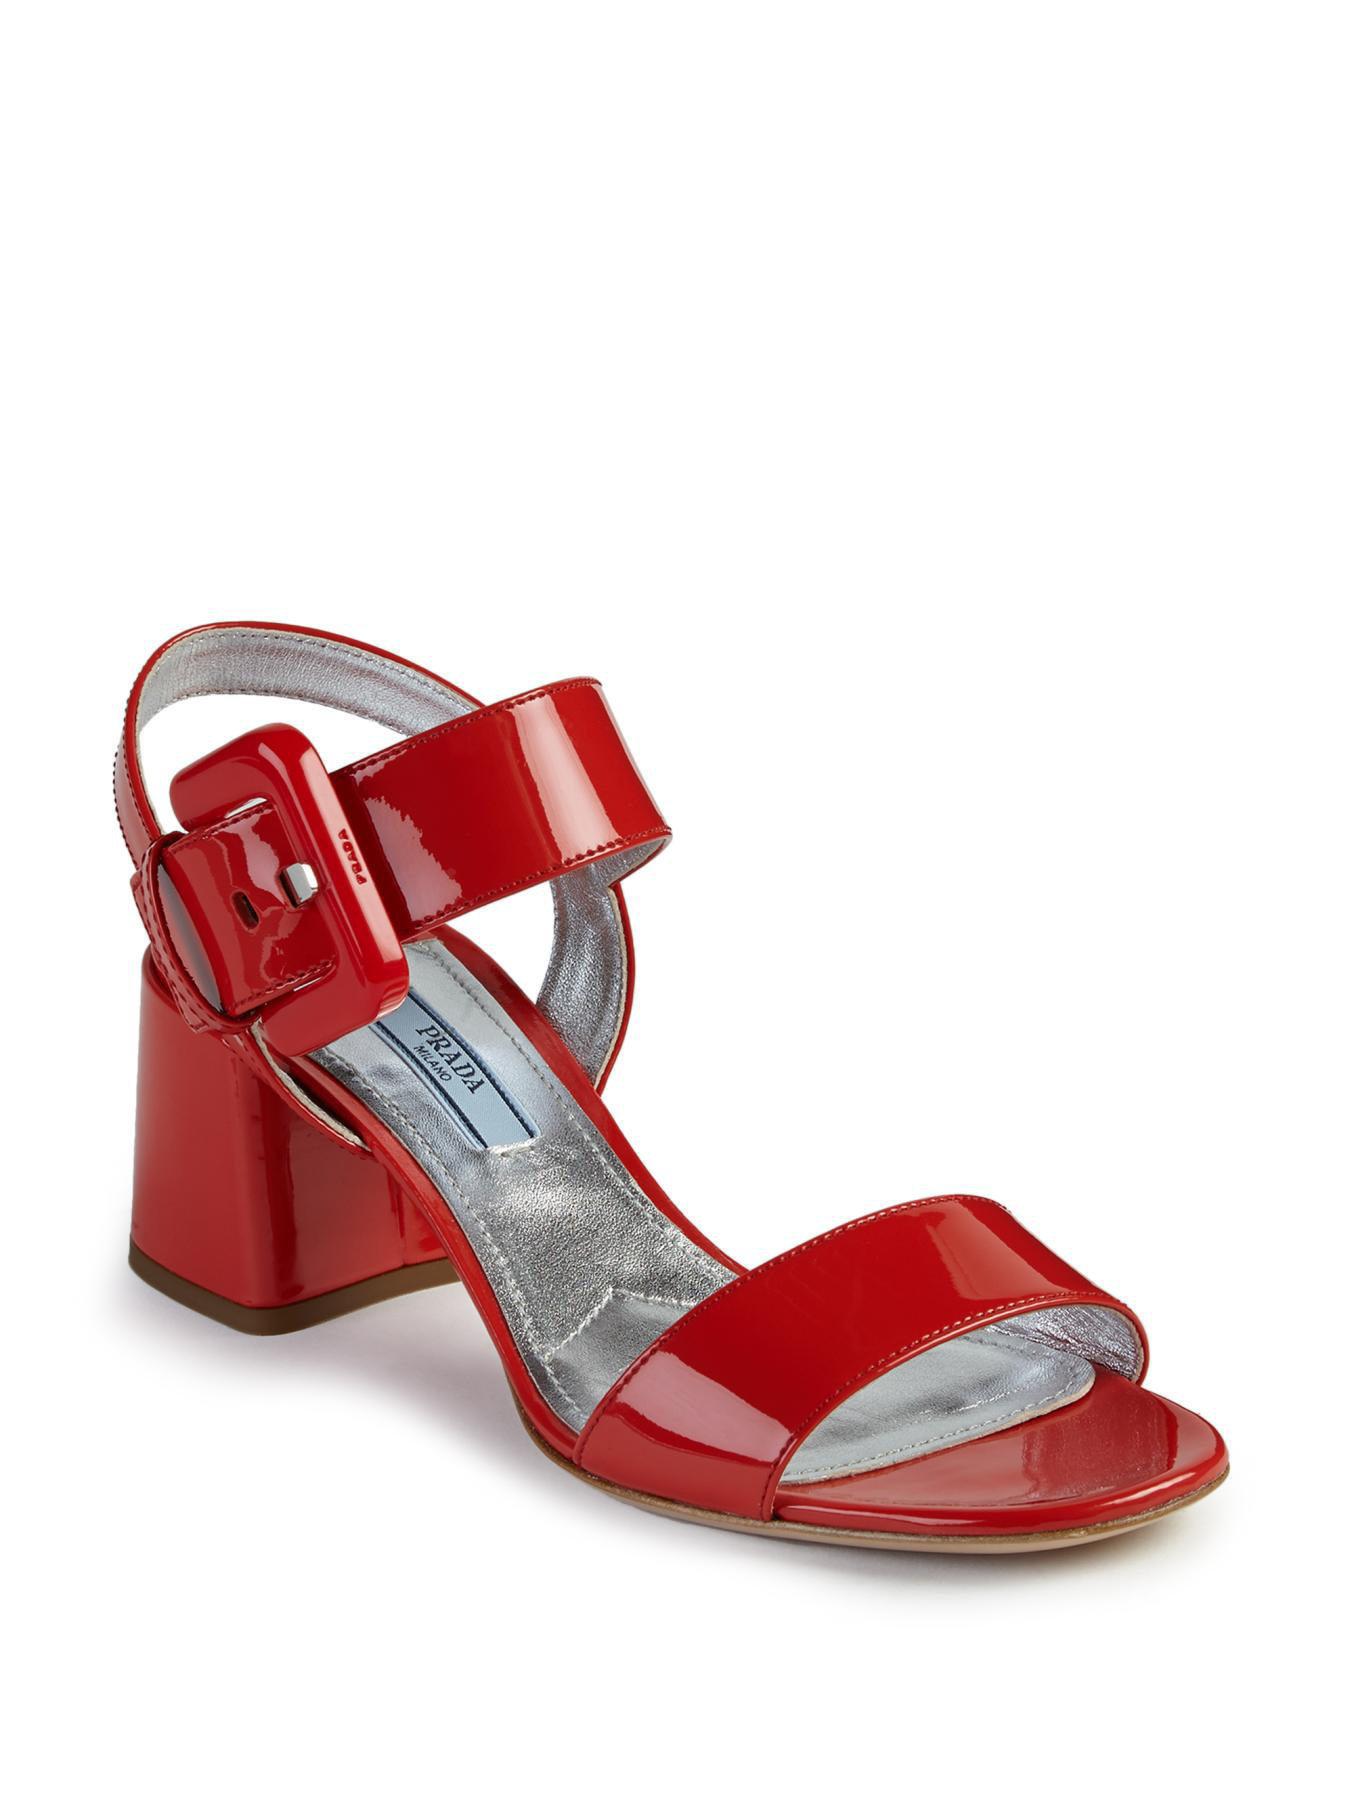 360053a5ce8 Lyst - Prada Patent Leather Mid-heel Sandals in Red